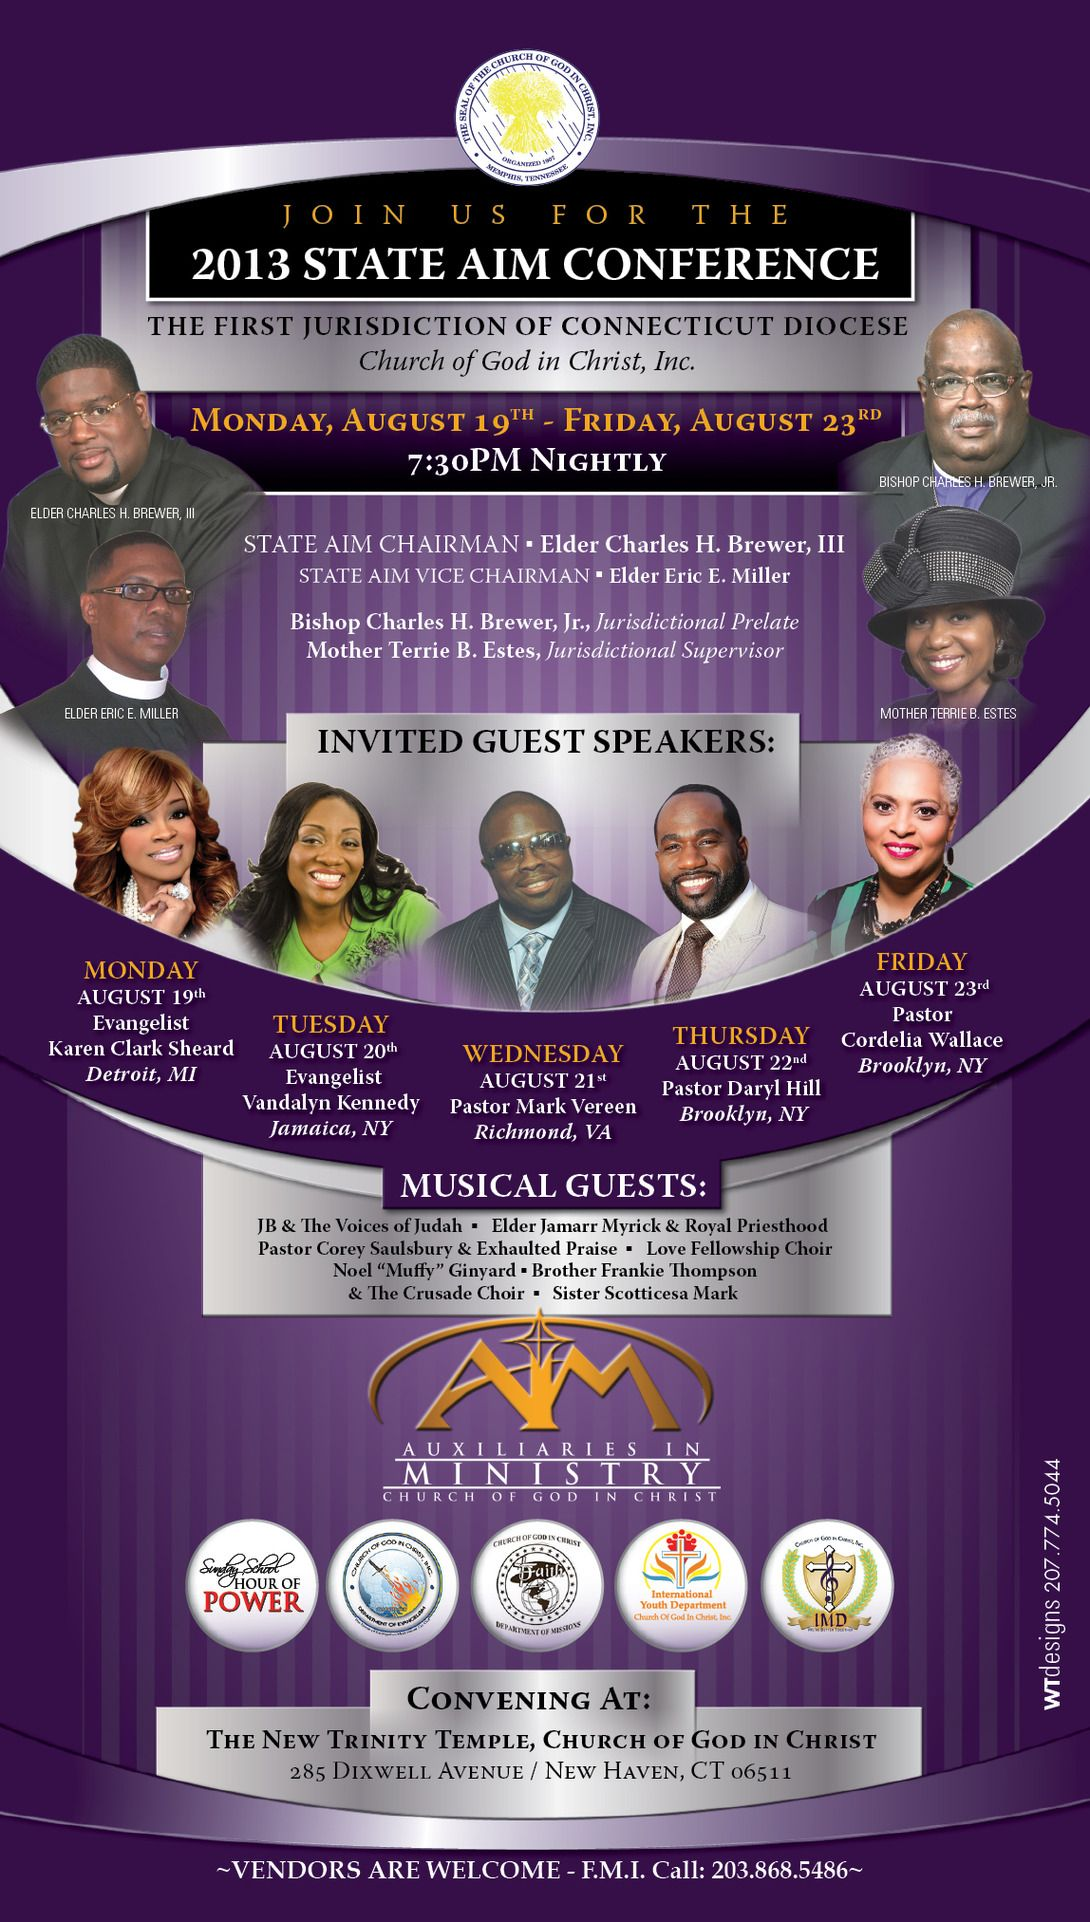 The First Jurisdiction of Connecticut COGIC State AIM Conference on